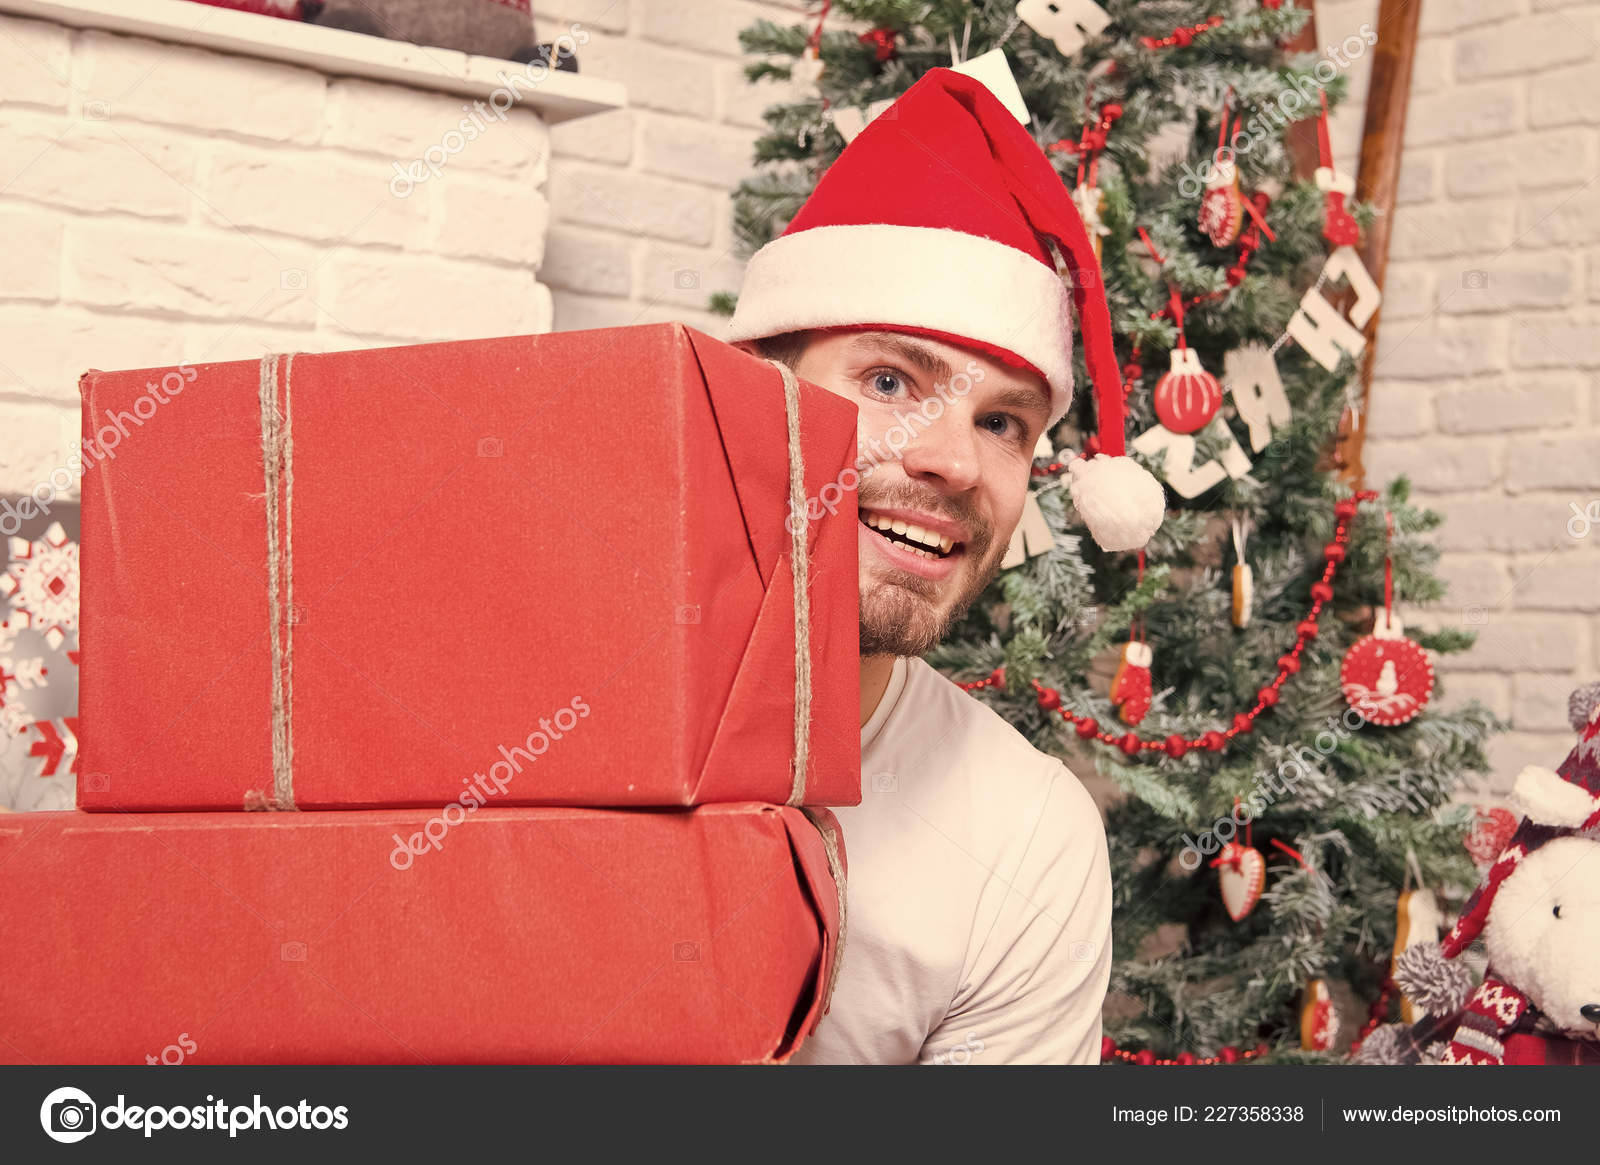 55c11cf38efa7 Macho in red hat smile with wrapped presents. Man santa with boxes at christmas  tree. Boxing day concept. Gift giving and exchange.